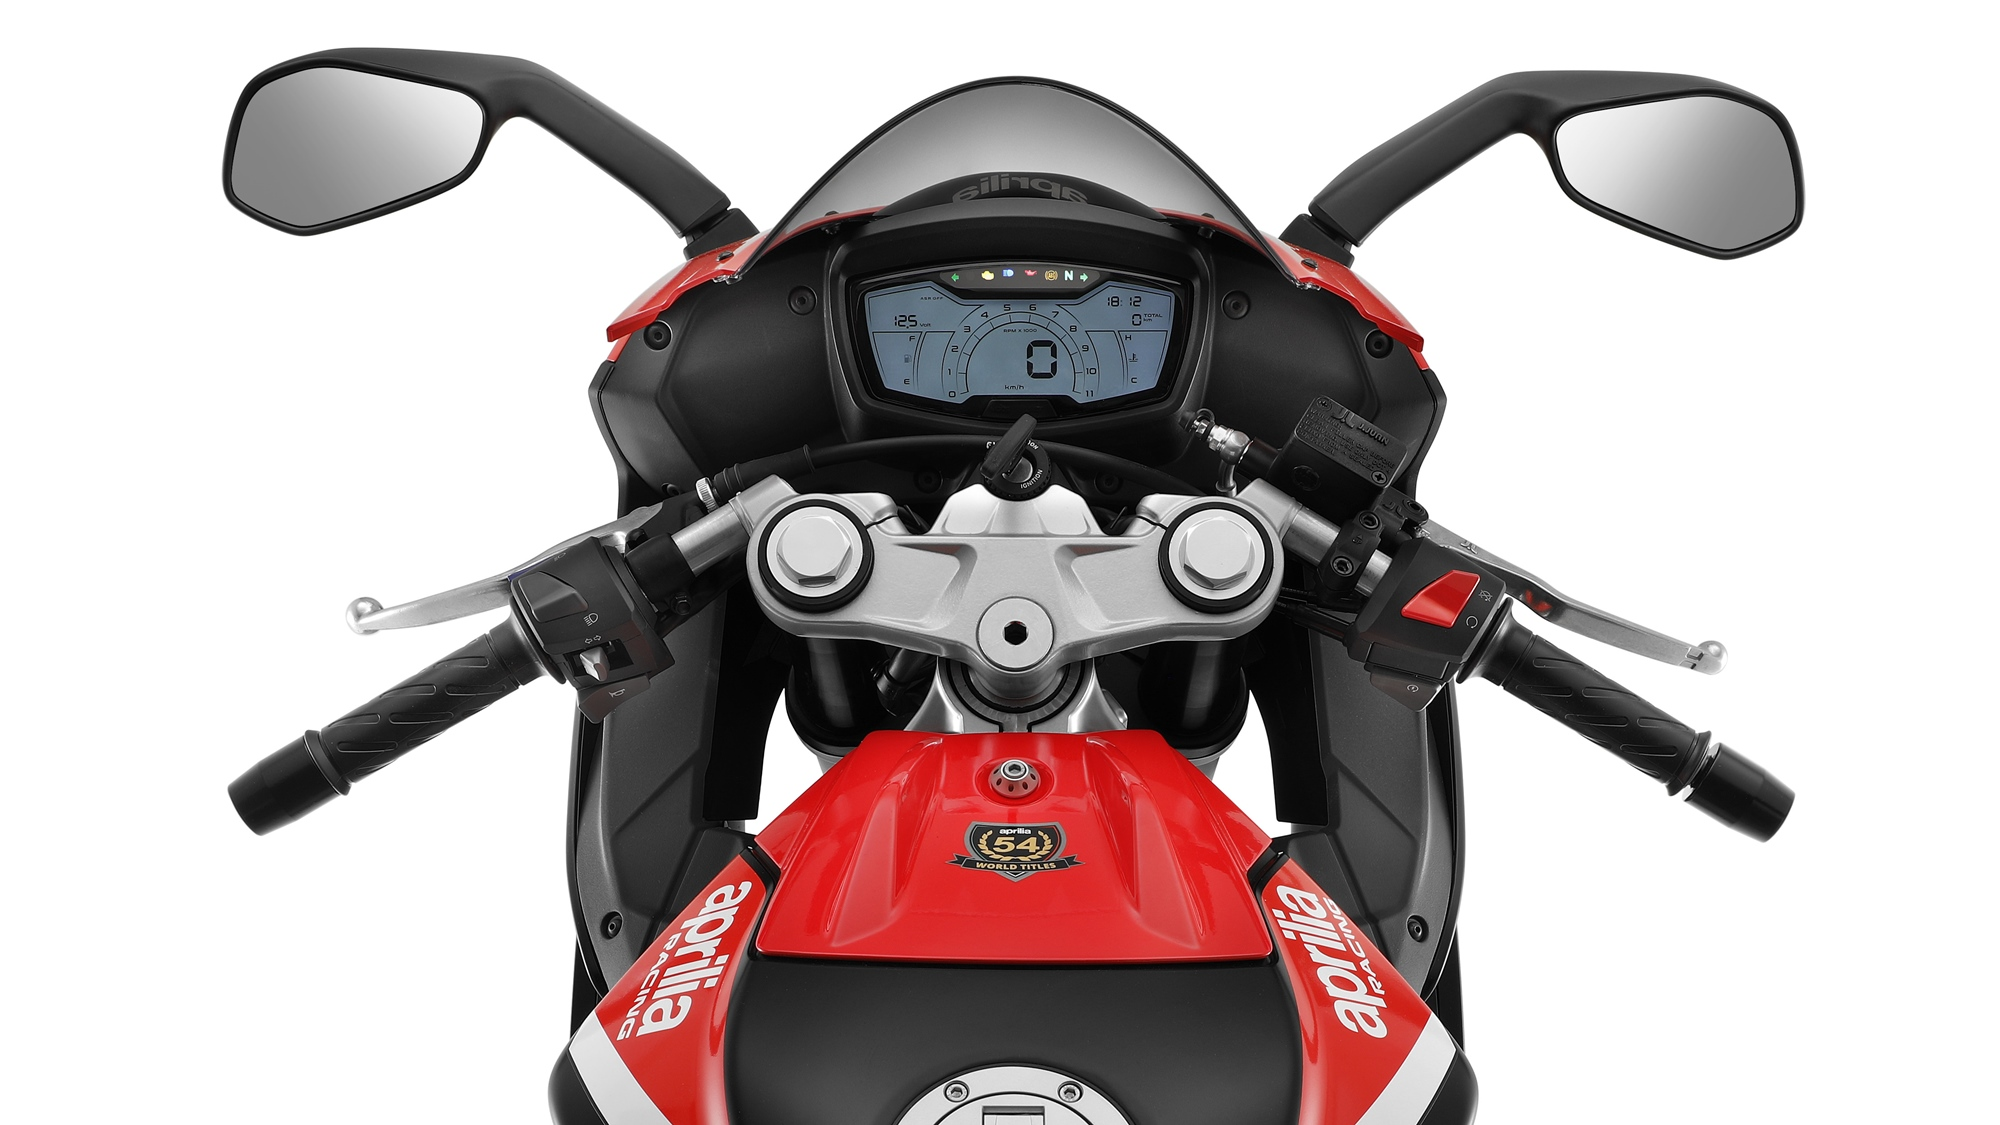 2021 Aprilia RS 125 TFT LCD digital screen